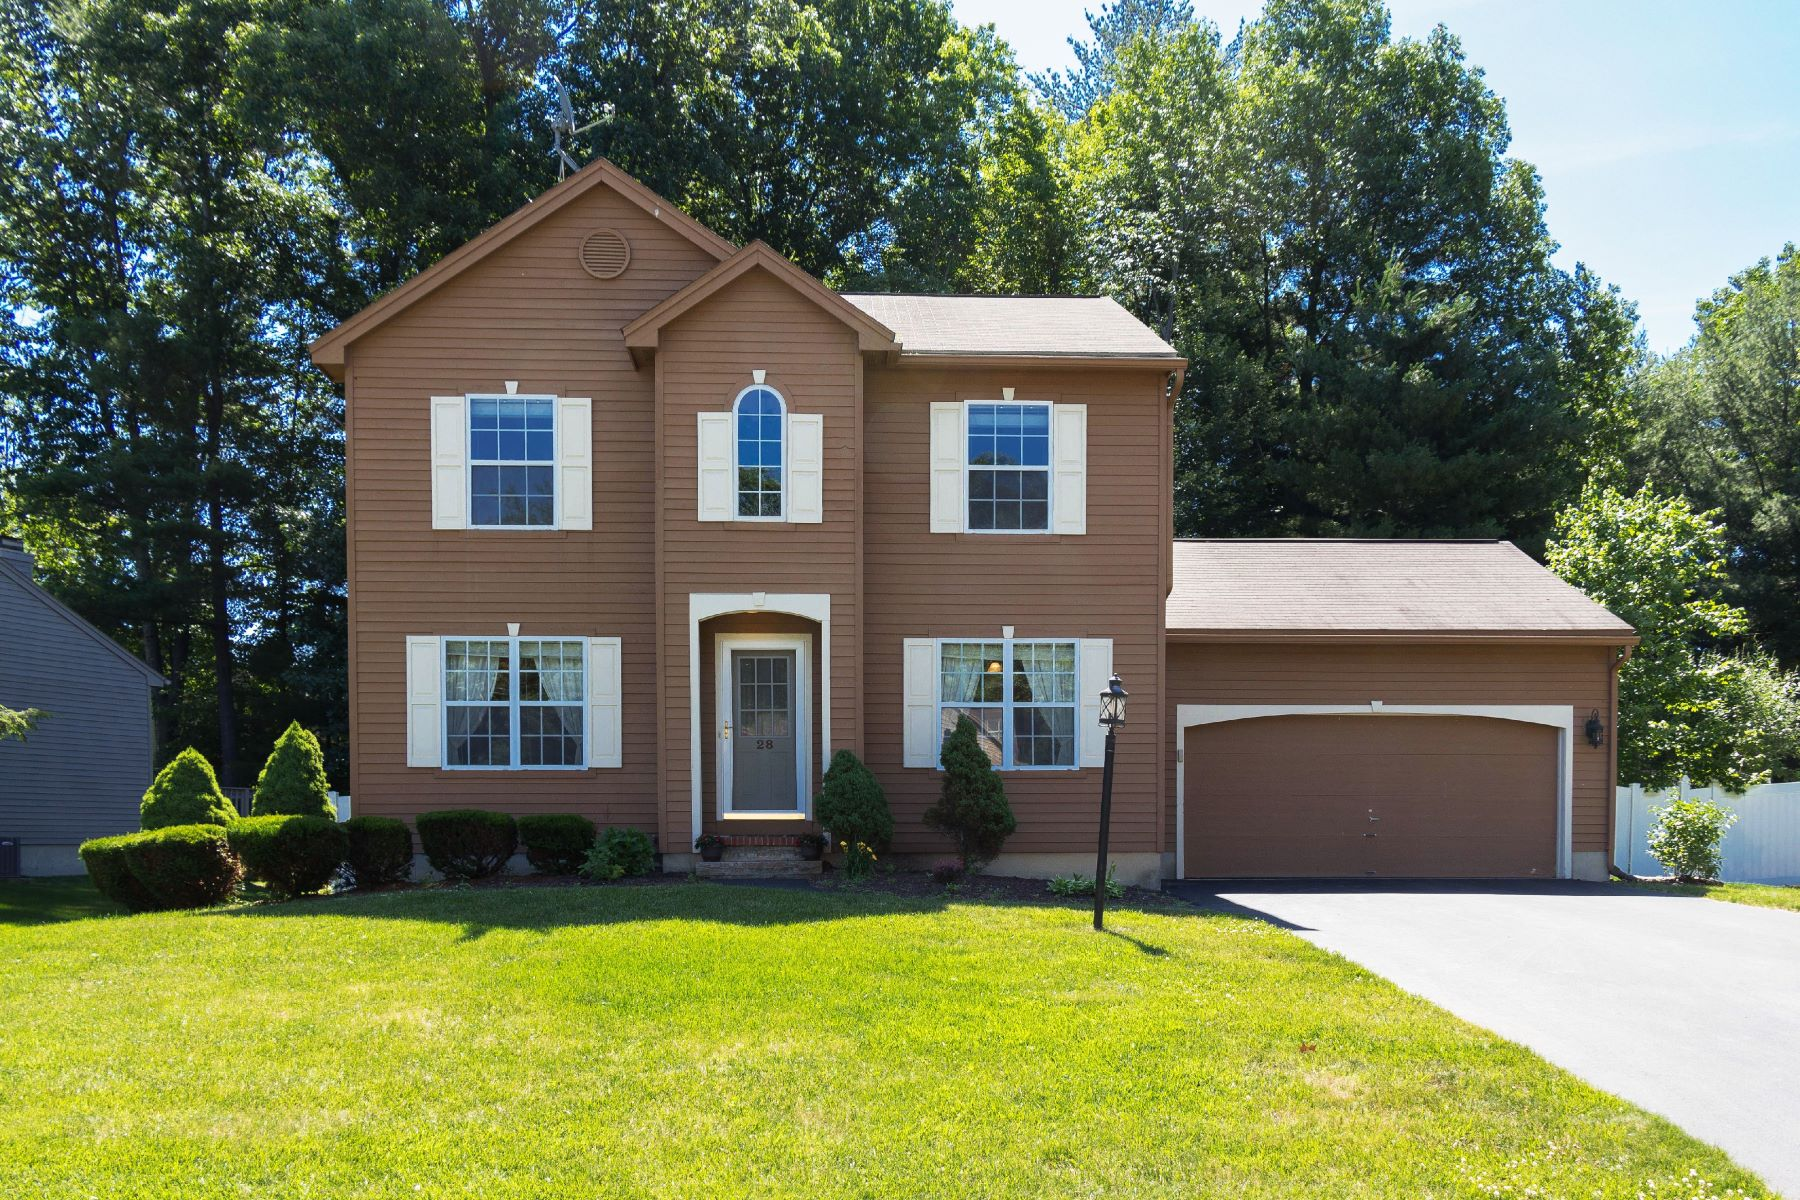 Single Family Homes for Active at Clifton Park Colonial 28 Commons Blvd. Clifton Park, New York 12065 United States